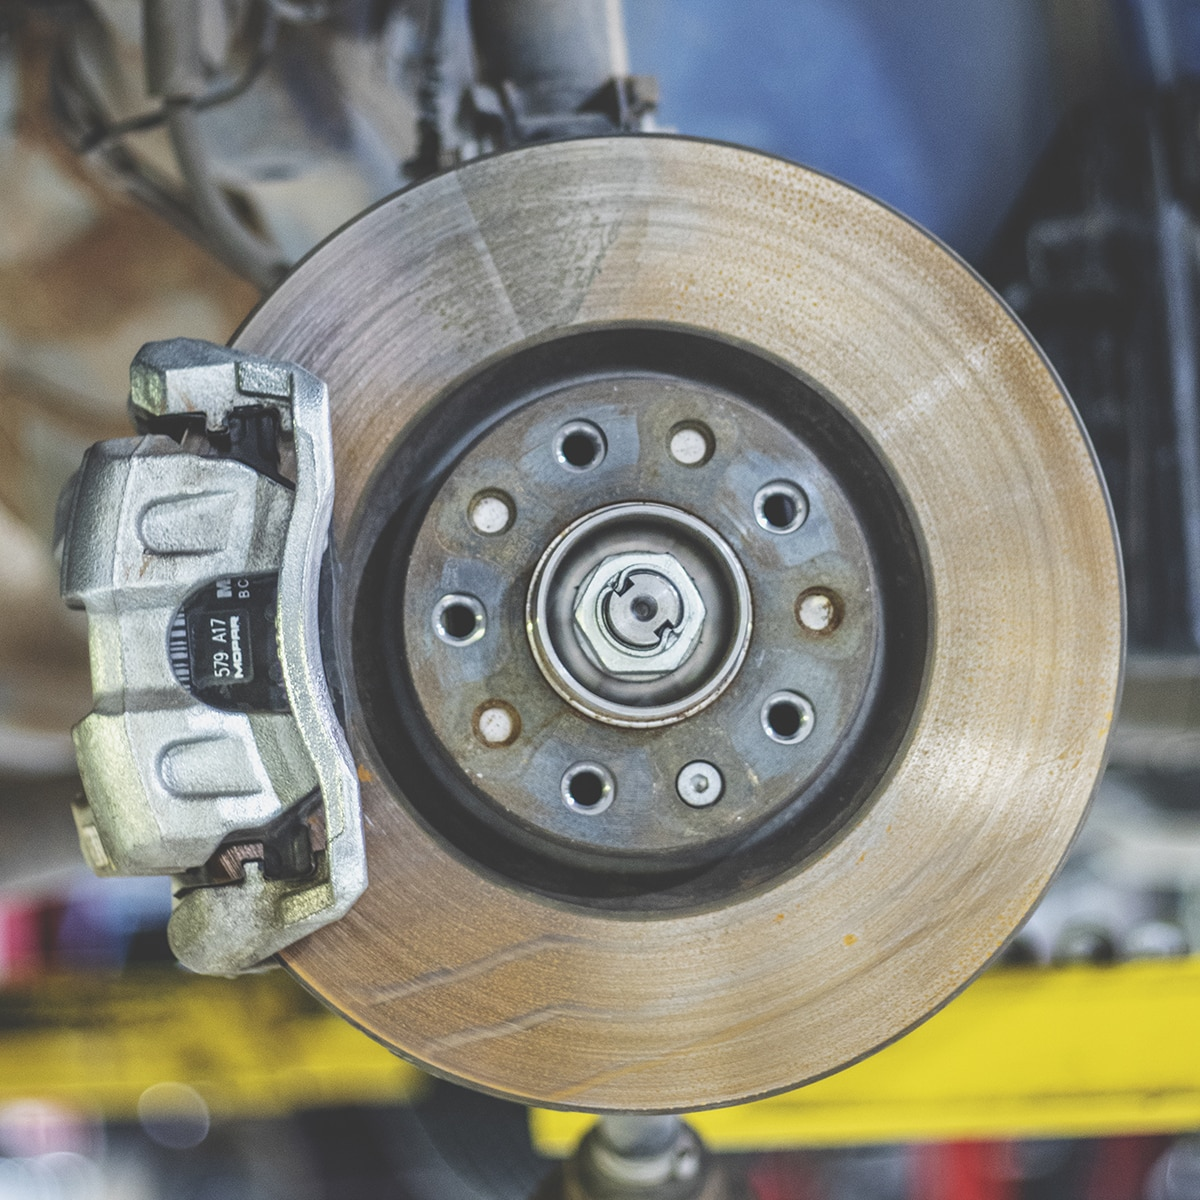 Brakes And Rotors >> Causes Of Squeaking Brakes And When To Get Them Checked